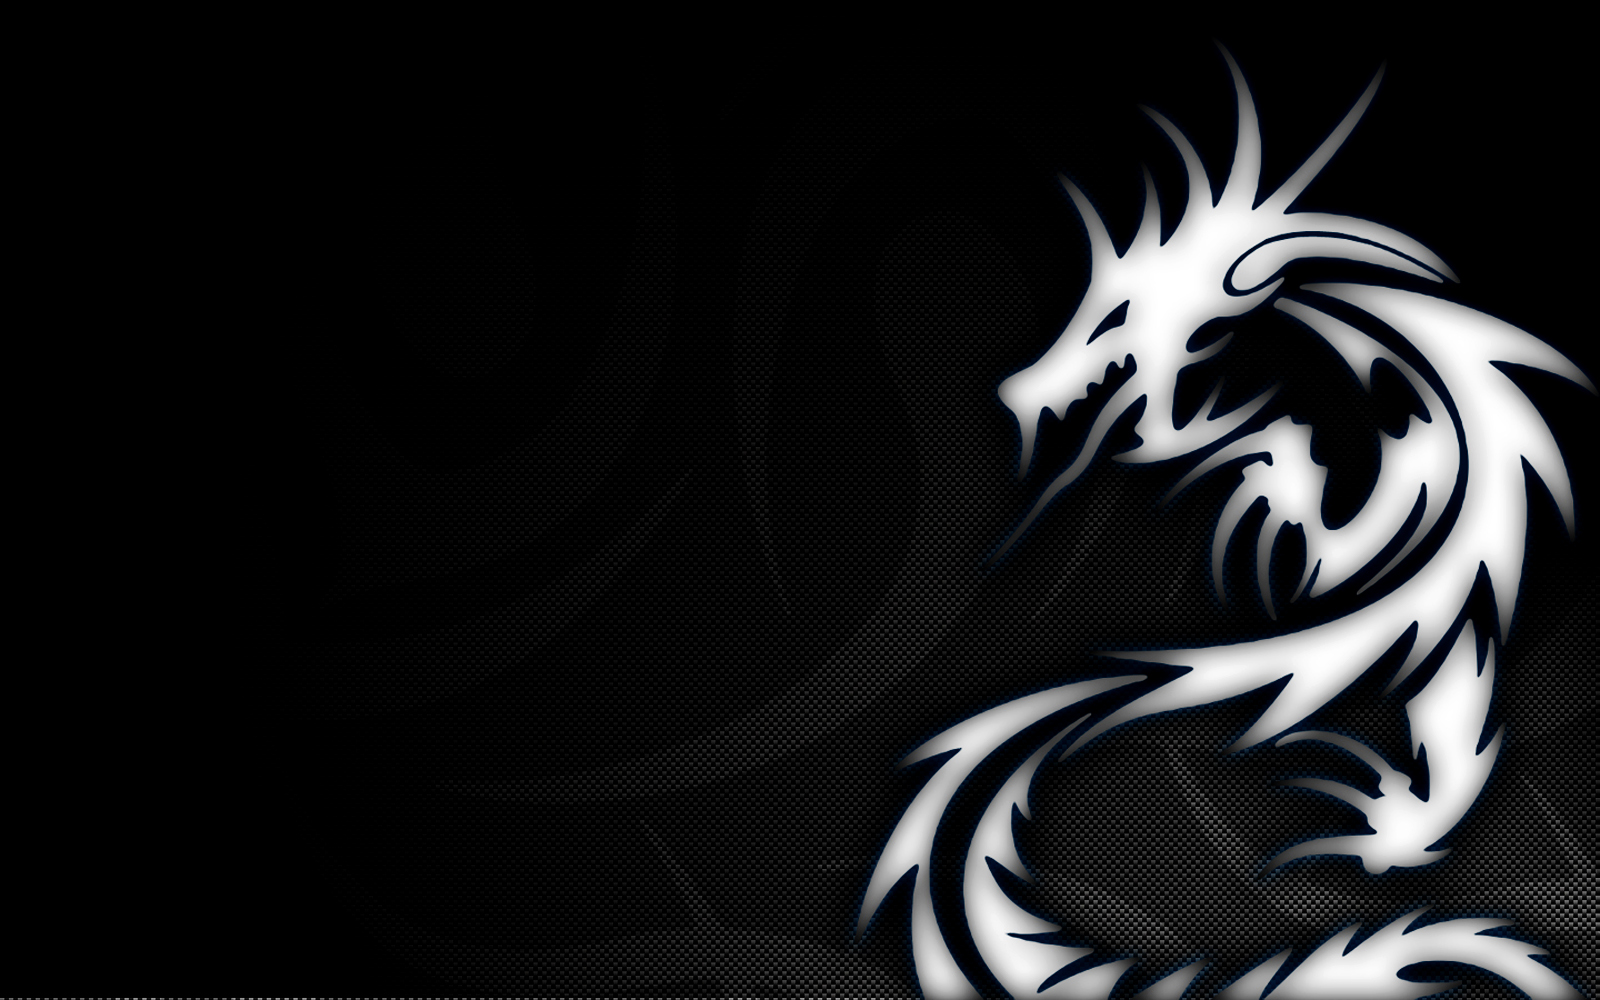 http://4.bp.blogspot.com/-9sIYIwz8Cs4/TwYUSKX9qPI/AAAAAAAAAOQ/7EahuOC2_hs/s1600/Dragon_Sign_Logo_Design_HD_Wallpaper-Vvallpaper.Net.jpg